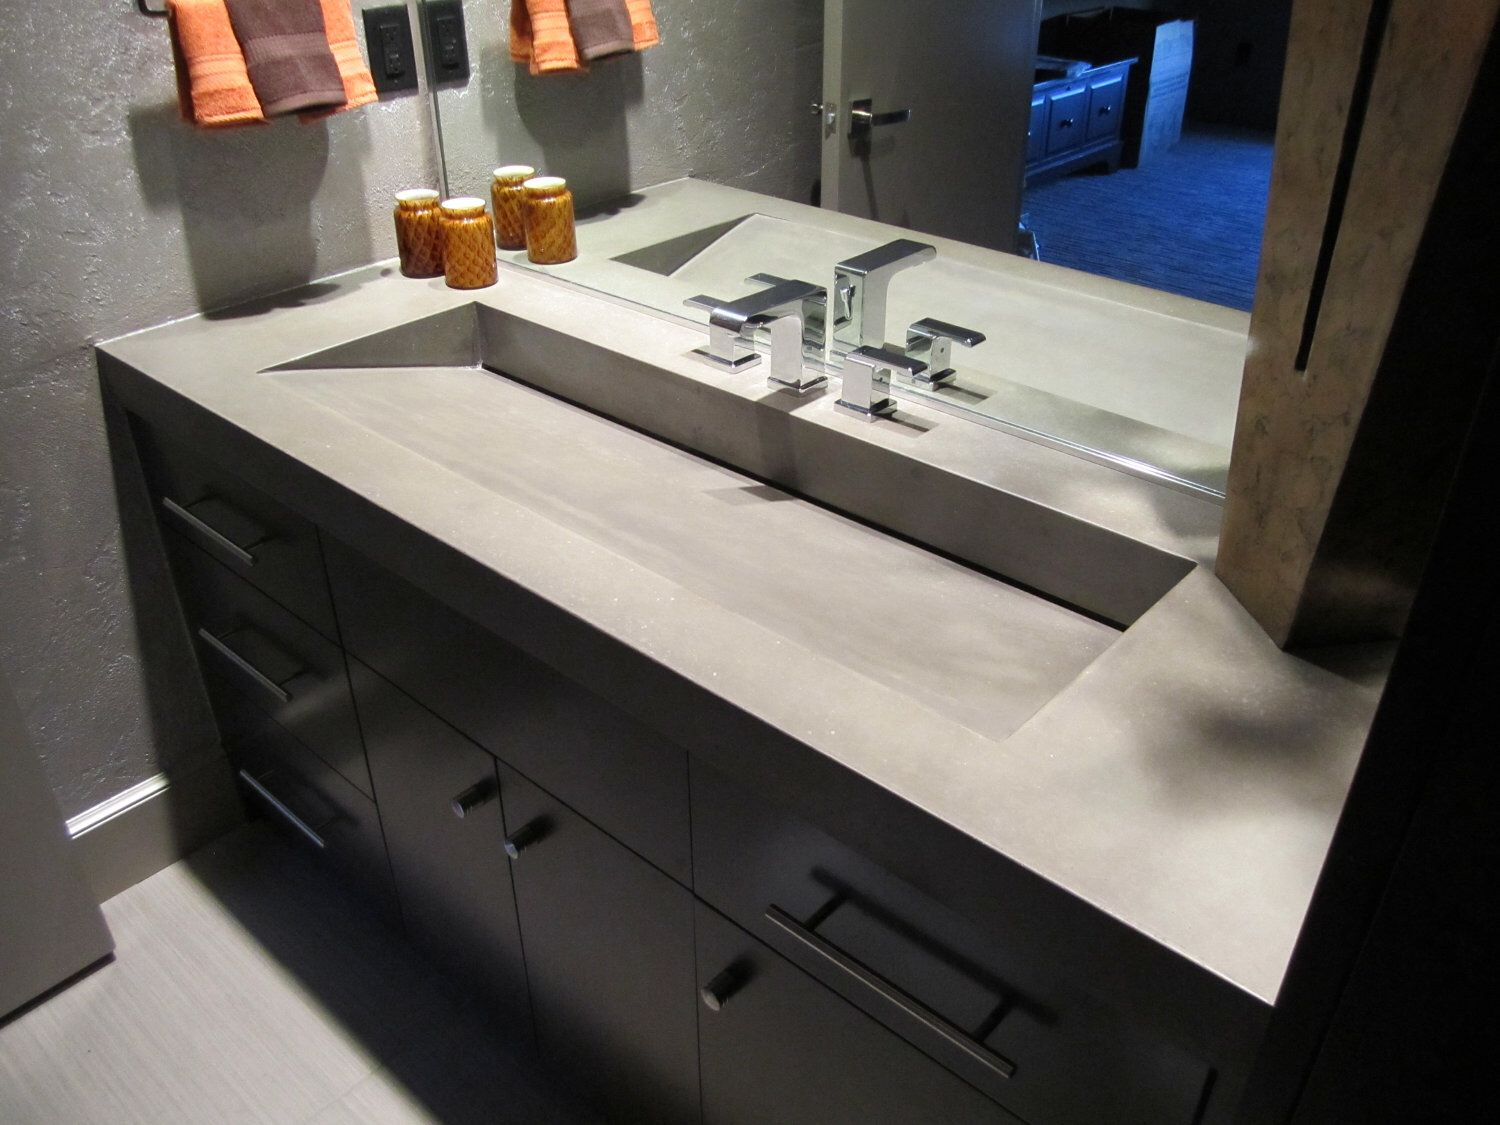 Pin by Kristin Yetto on Carmel | Pinterest | Concrete, Sinks and ...